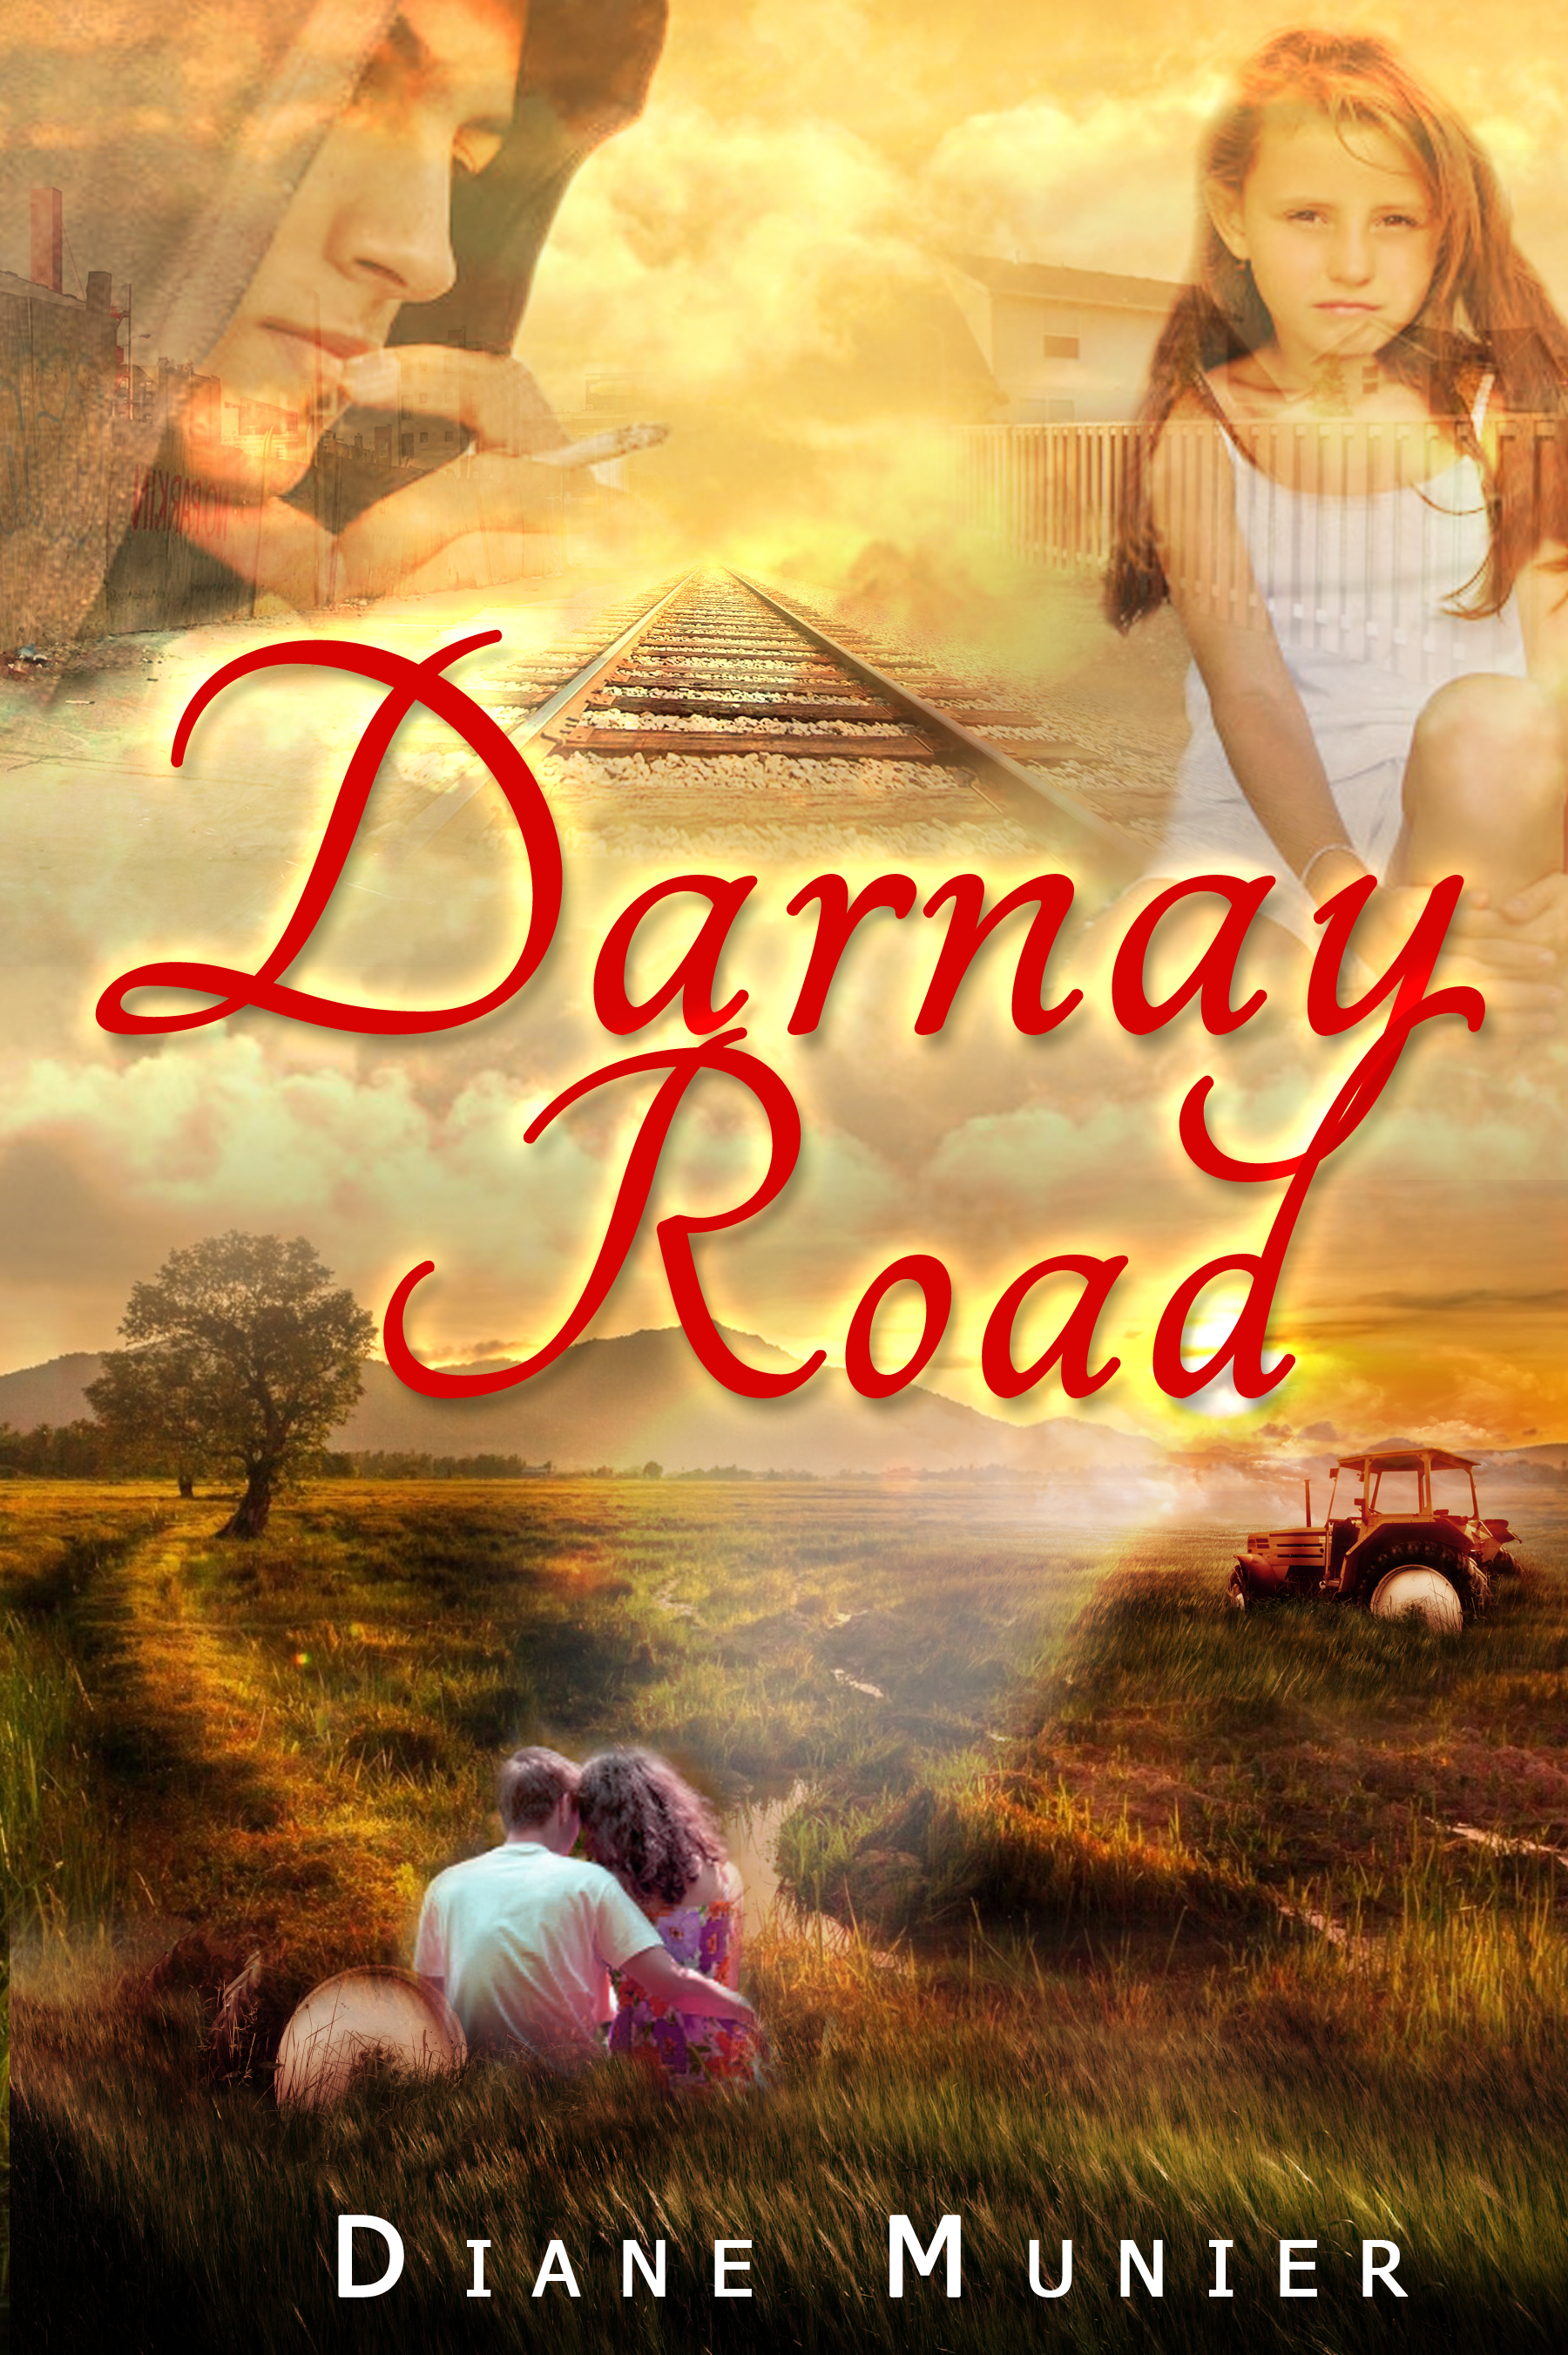 https://dianemunier.files.wordpress.com/2015/02/darnay-road-cover.jpg